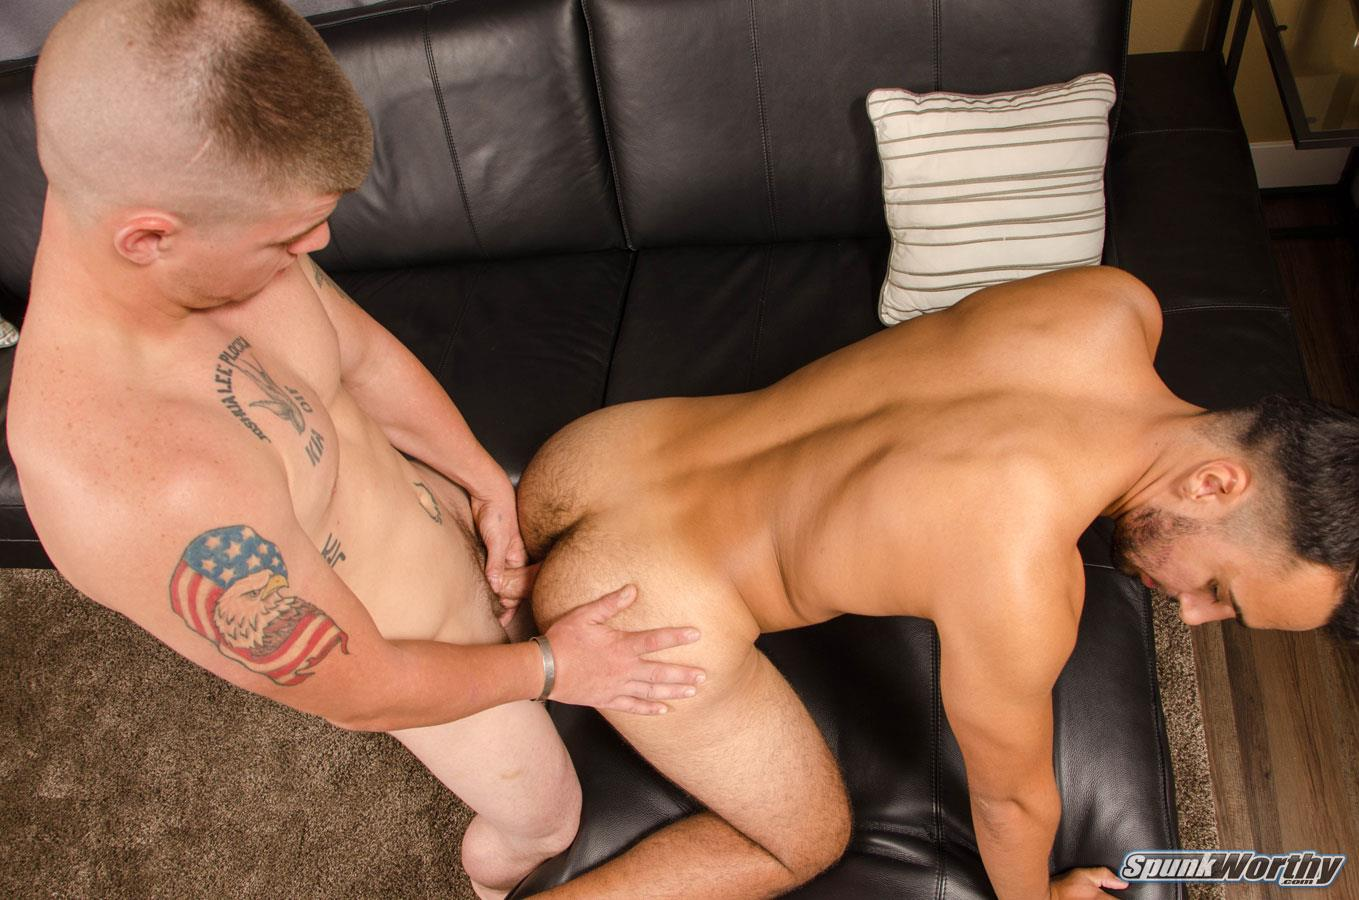 SpunkWorthy-Landon-and-Eddie-Straight-Army-Guy-Fucks-His-First-Ass-Amateur-Gay-Porn-06 Straight Army Hunk Barebacks His First Man Ass